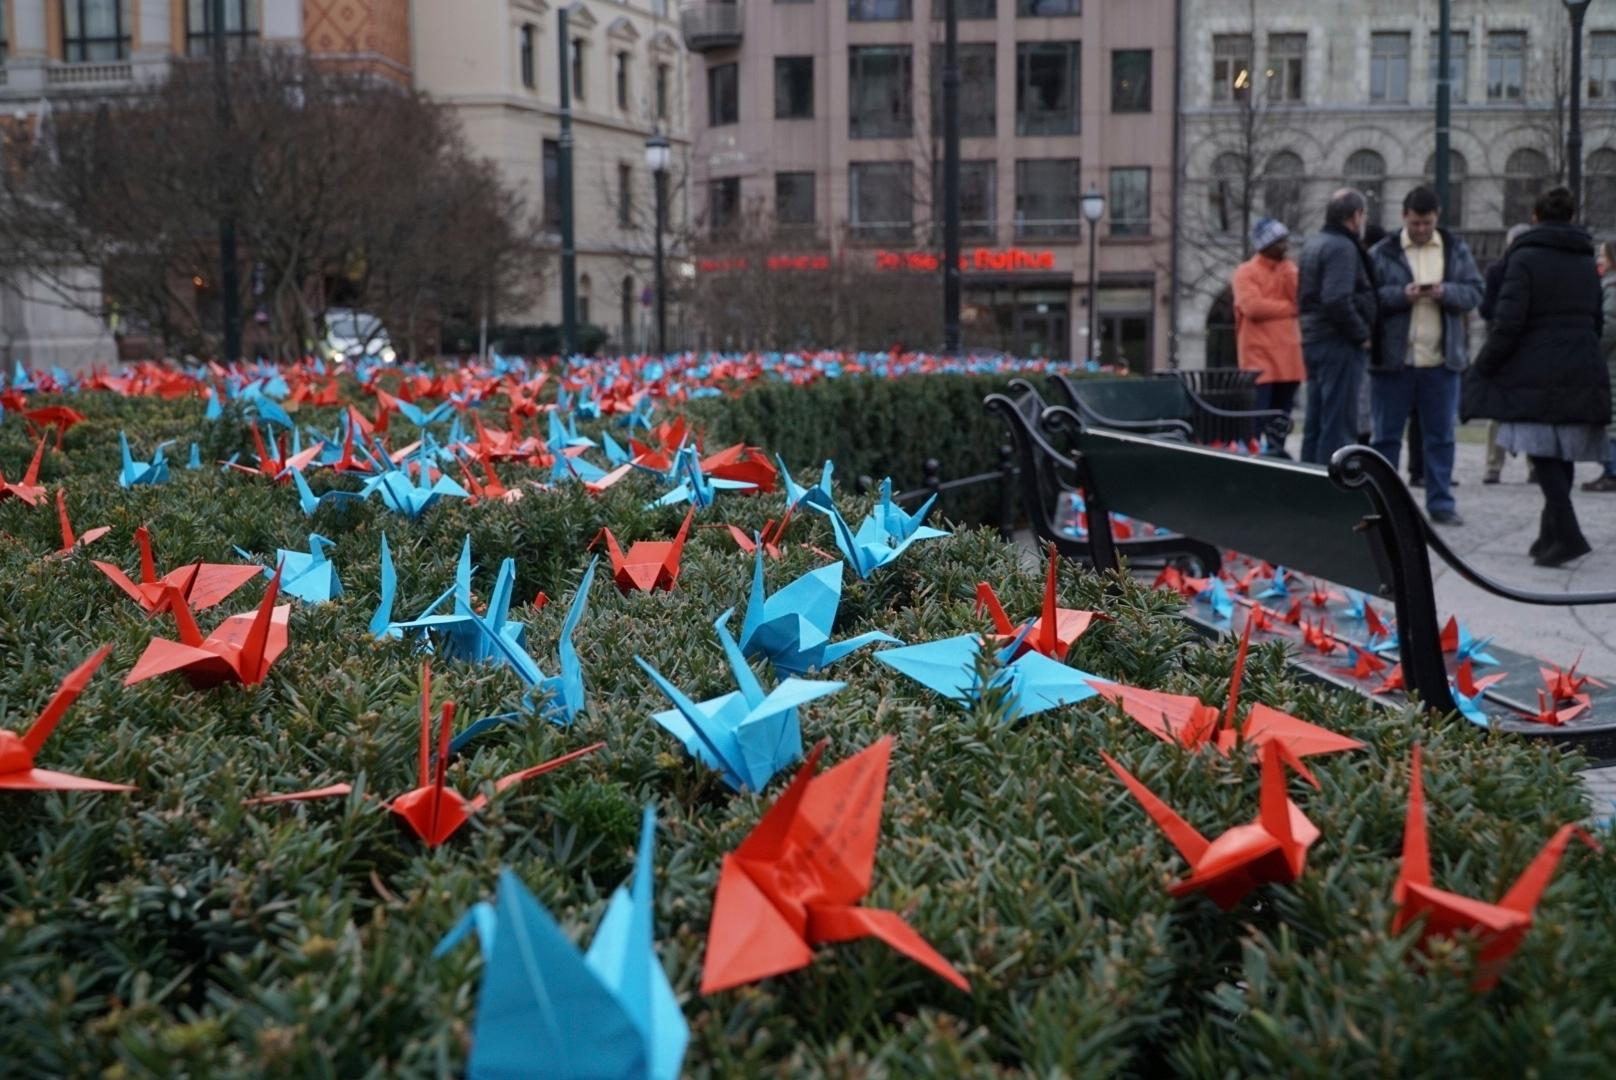 A thousand paper cranes installed by anti-nuclear activists in front of the Norwegian parliament in Oslo, Saturday, Dec. 9, 2017.   The International Campaign to Abolish Nuclear Weapons is the recipient on this year's Nobel Peace Prize, has installed 1,000 paper cranes made by children in Hiroshima, the site of the world's first atomic bomb attack in Japan, outside the Norwegian Parliament ahead of formally receiving the prize. (AP Photo/David Keyton)